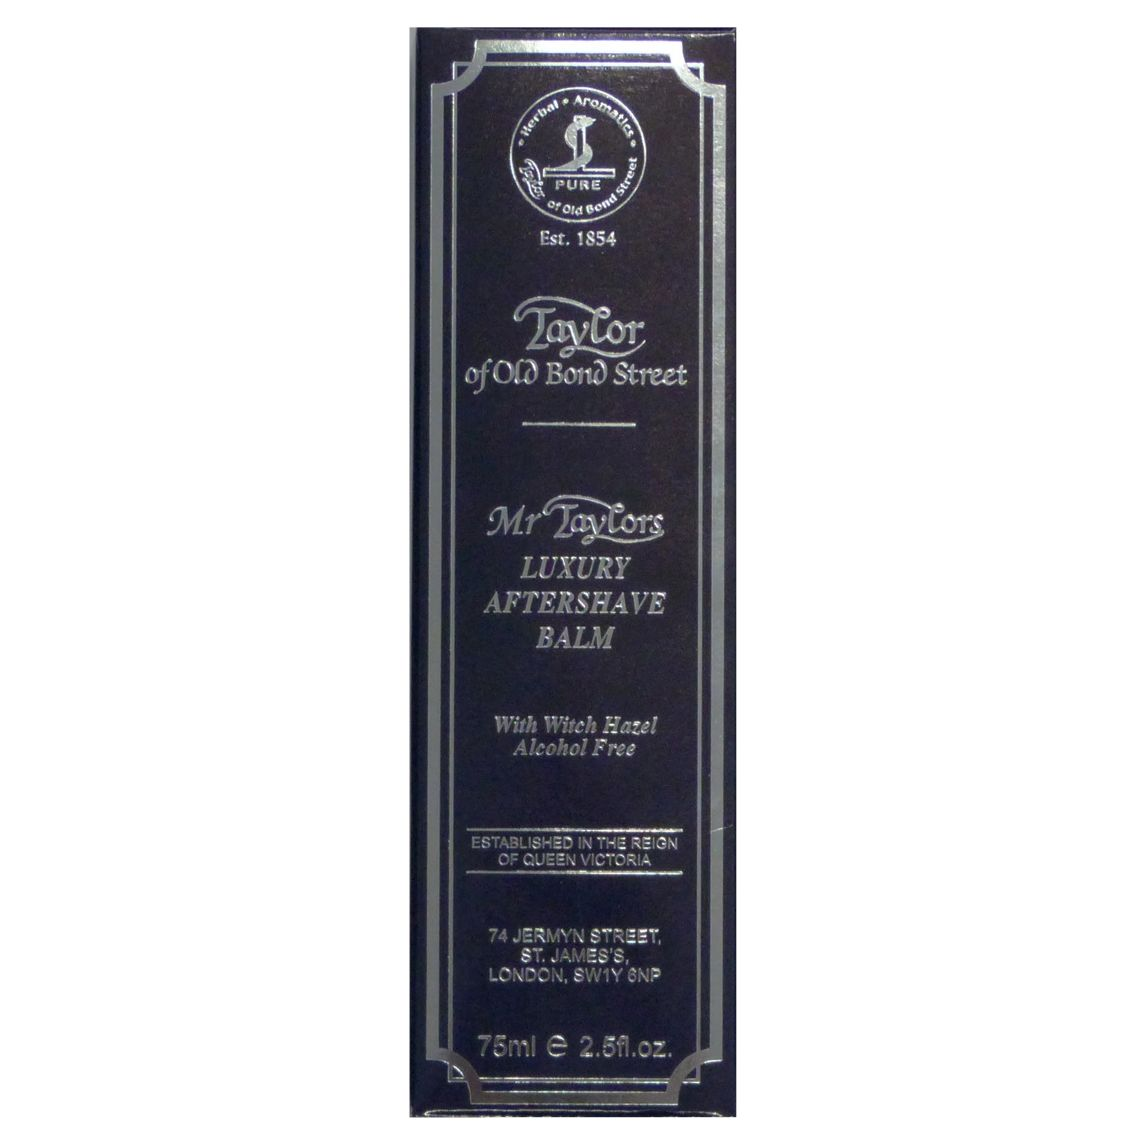 Taylor of Old Bond Street Taylor of Old Bond Street Mr Taylor's Luxury Aftershave Balm, 75g